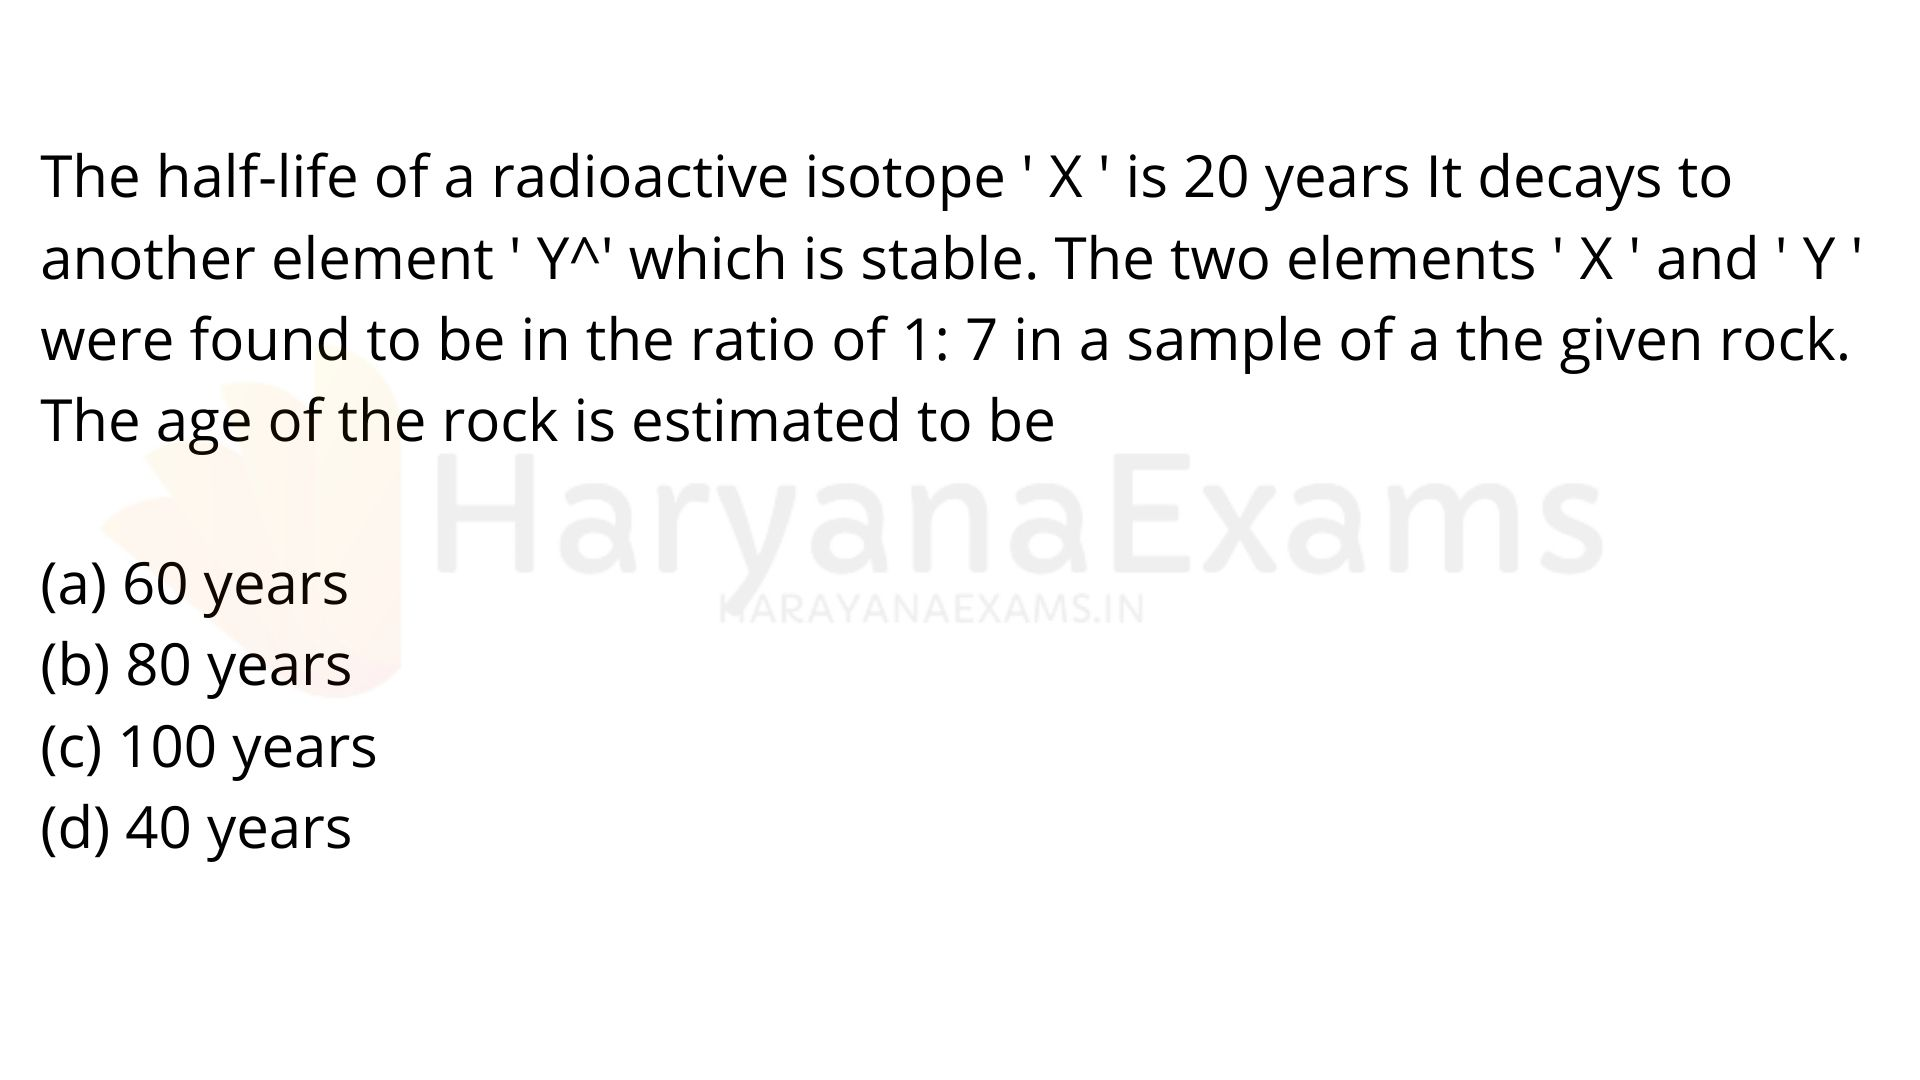 The half-life of a radioactive isotope ' X ' is 20 years It decays to another element ' Y^' which is stable. The two elements ' X ' and ' Y ' were found to be in the ratio of 1: 7 in a sample of a given rock. The age of the rock is estimated to be